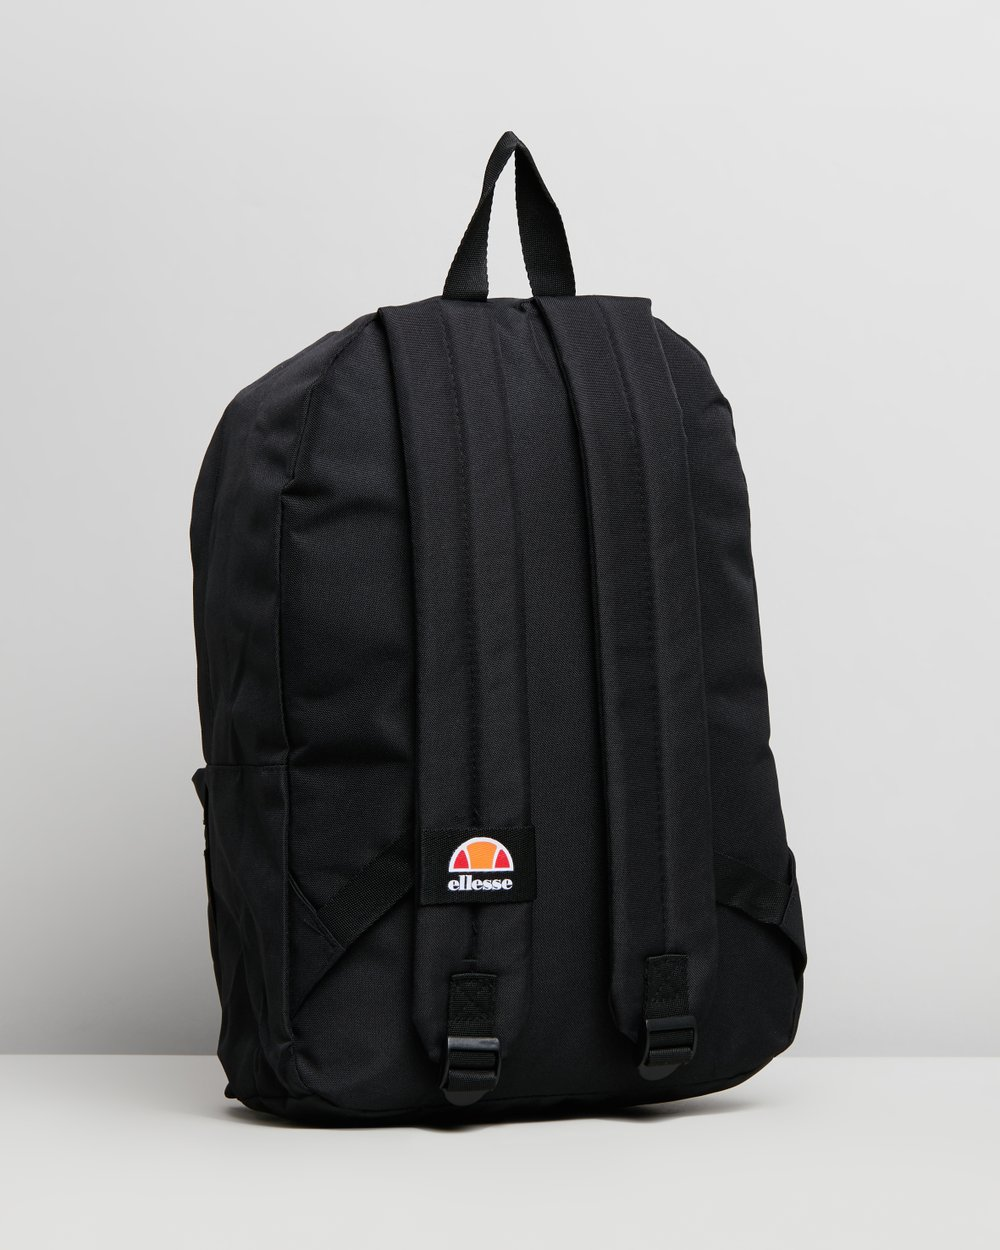 168472c1e5 Rolby Backpack   Pencil Case by Ellesse Online